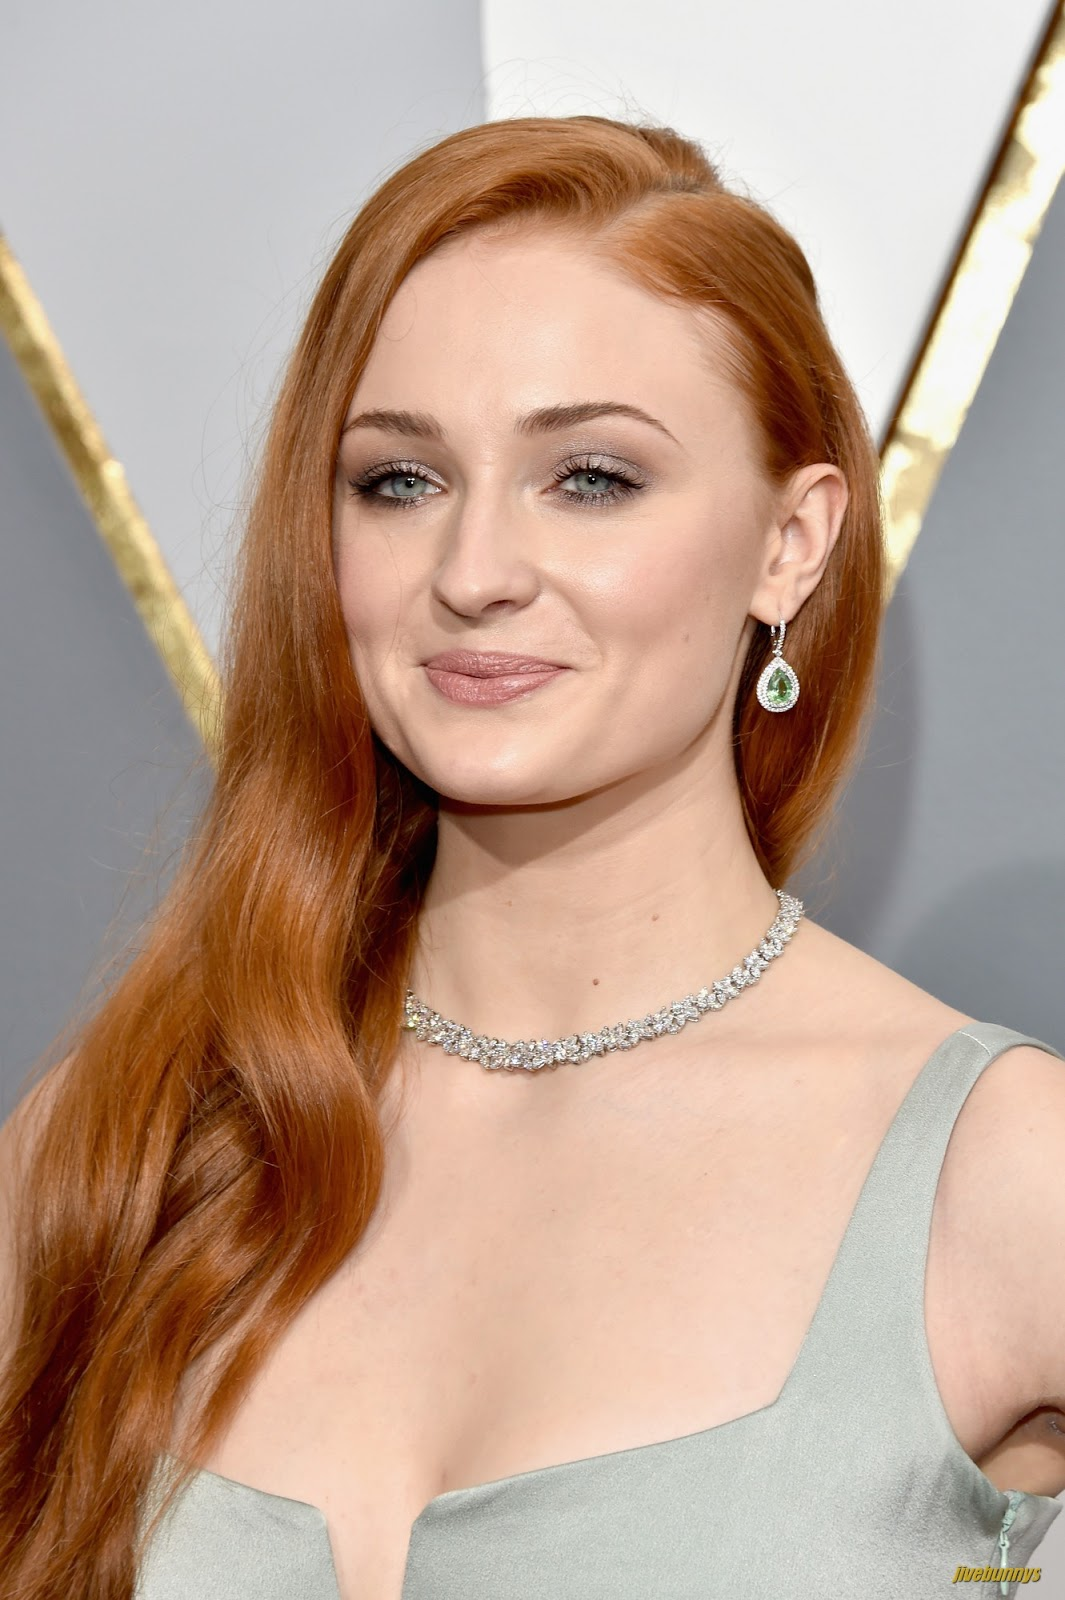 sophie turner hq desktop - photo #46